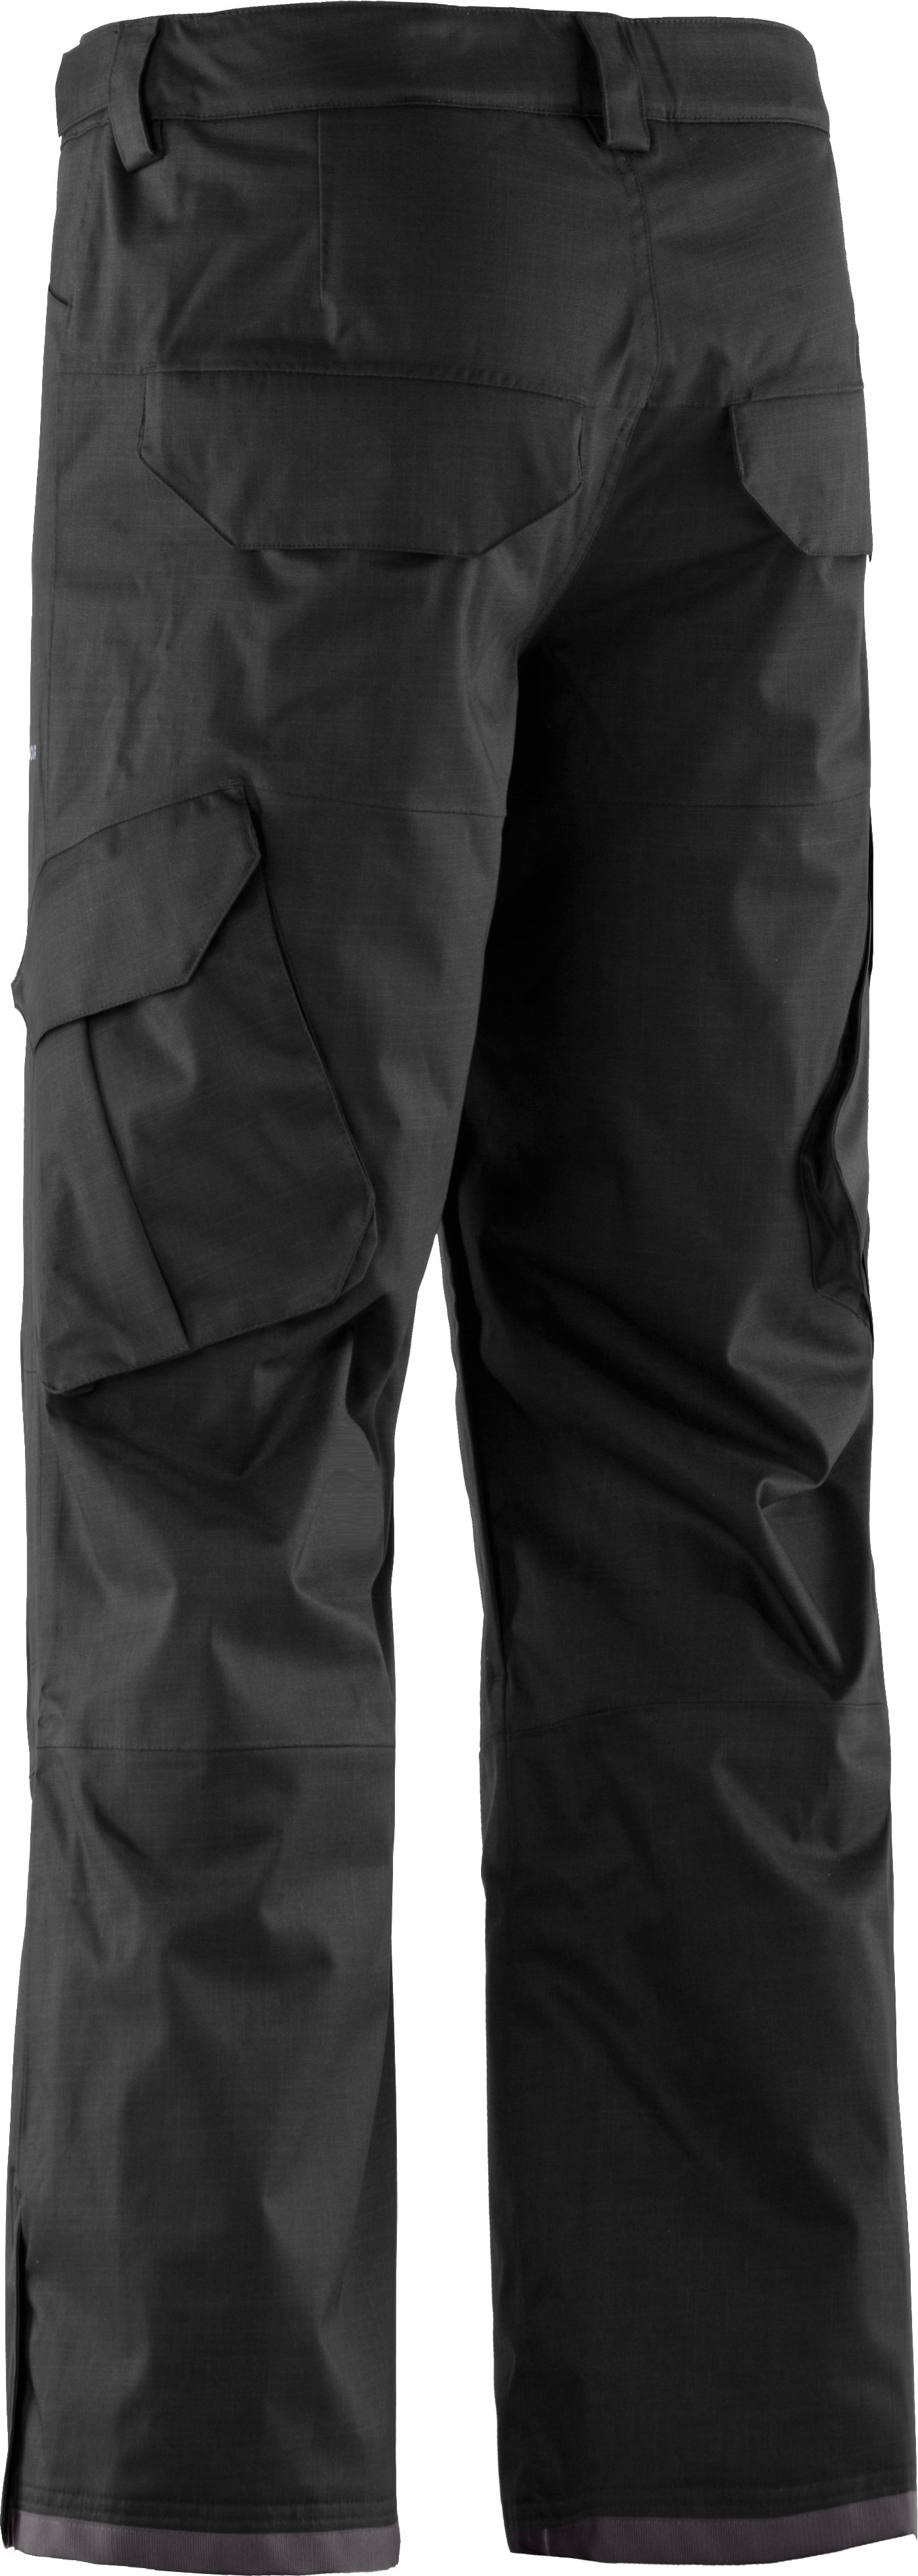 Men's ColdGear® Infrared Snocone Pants, Black , undefined